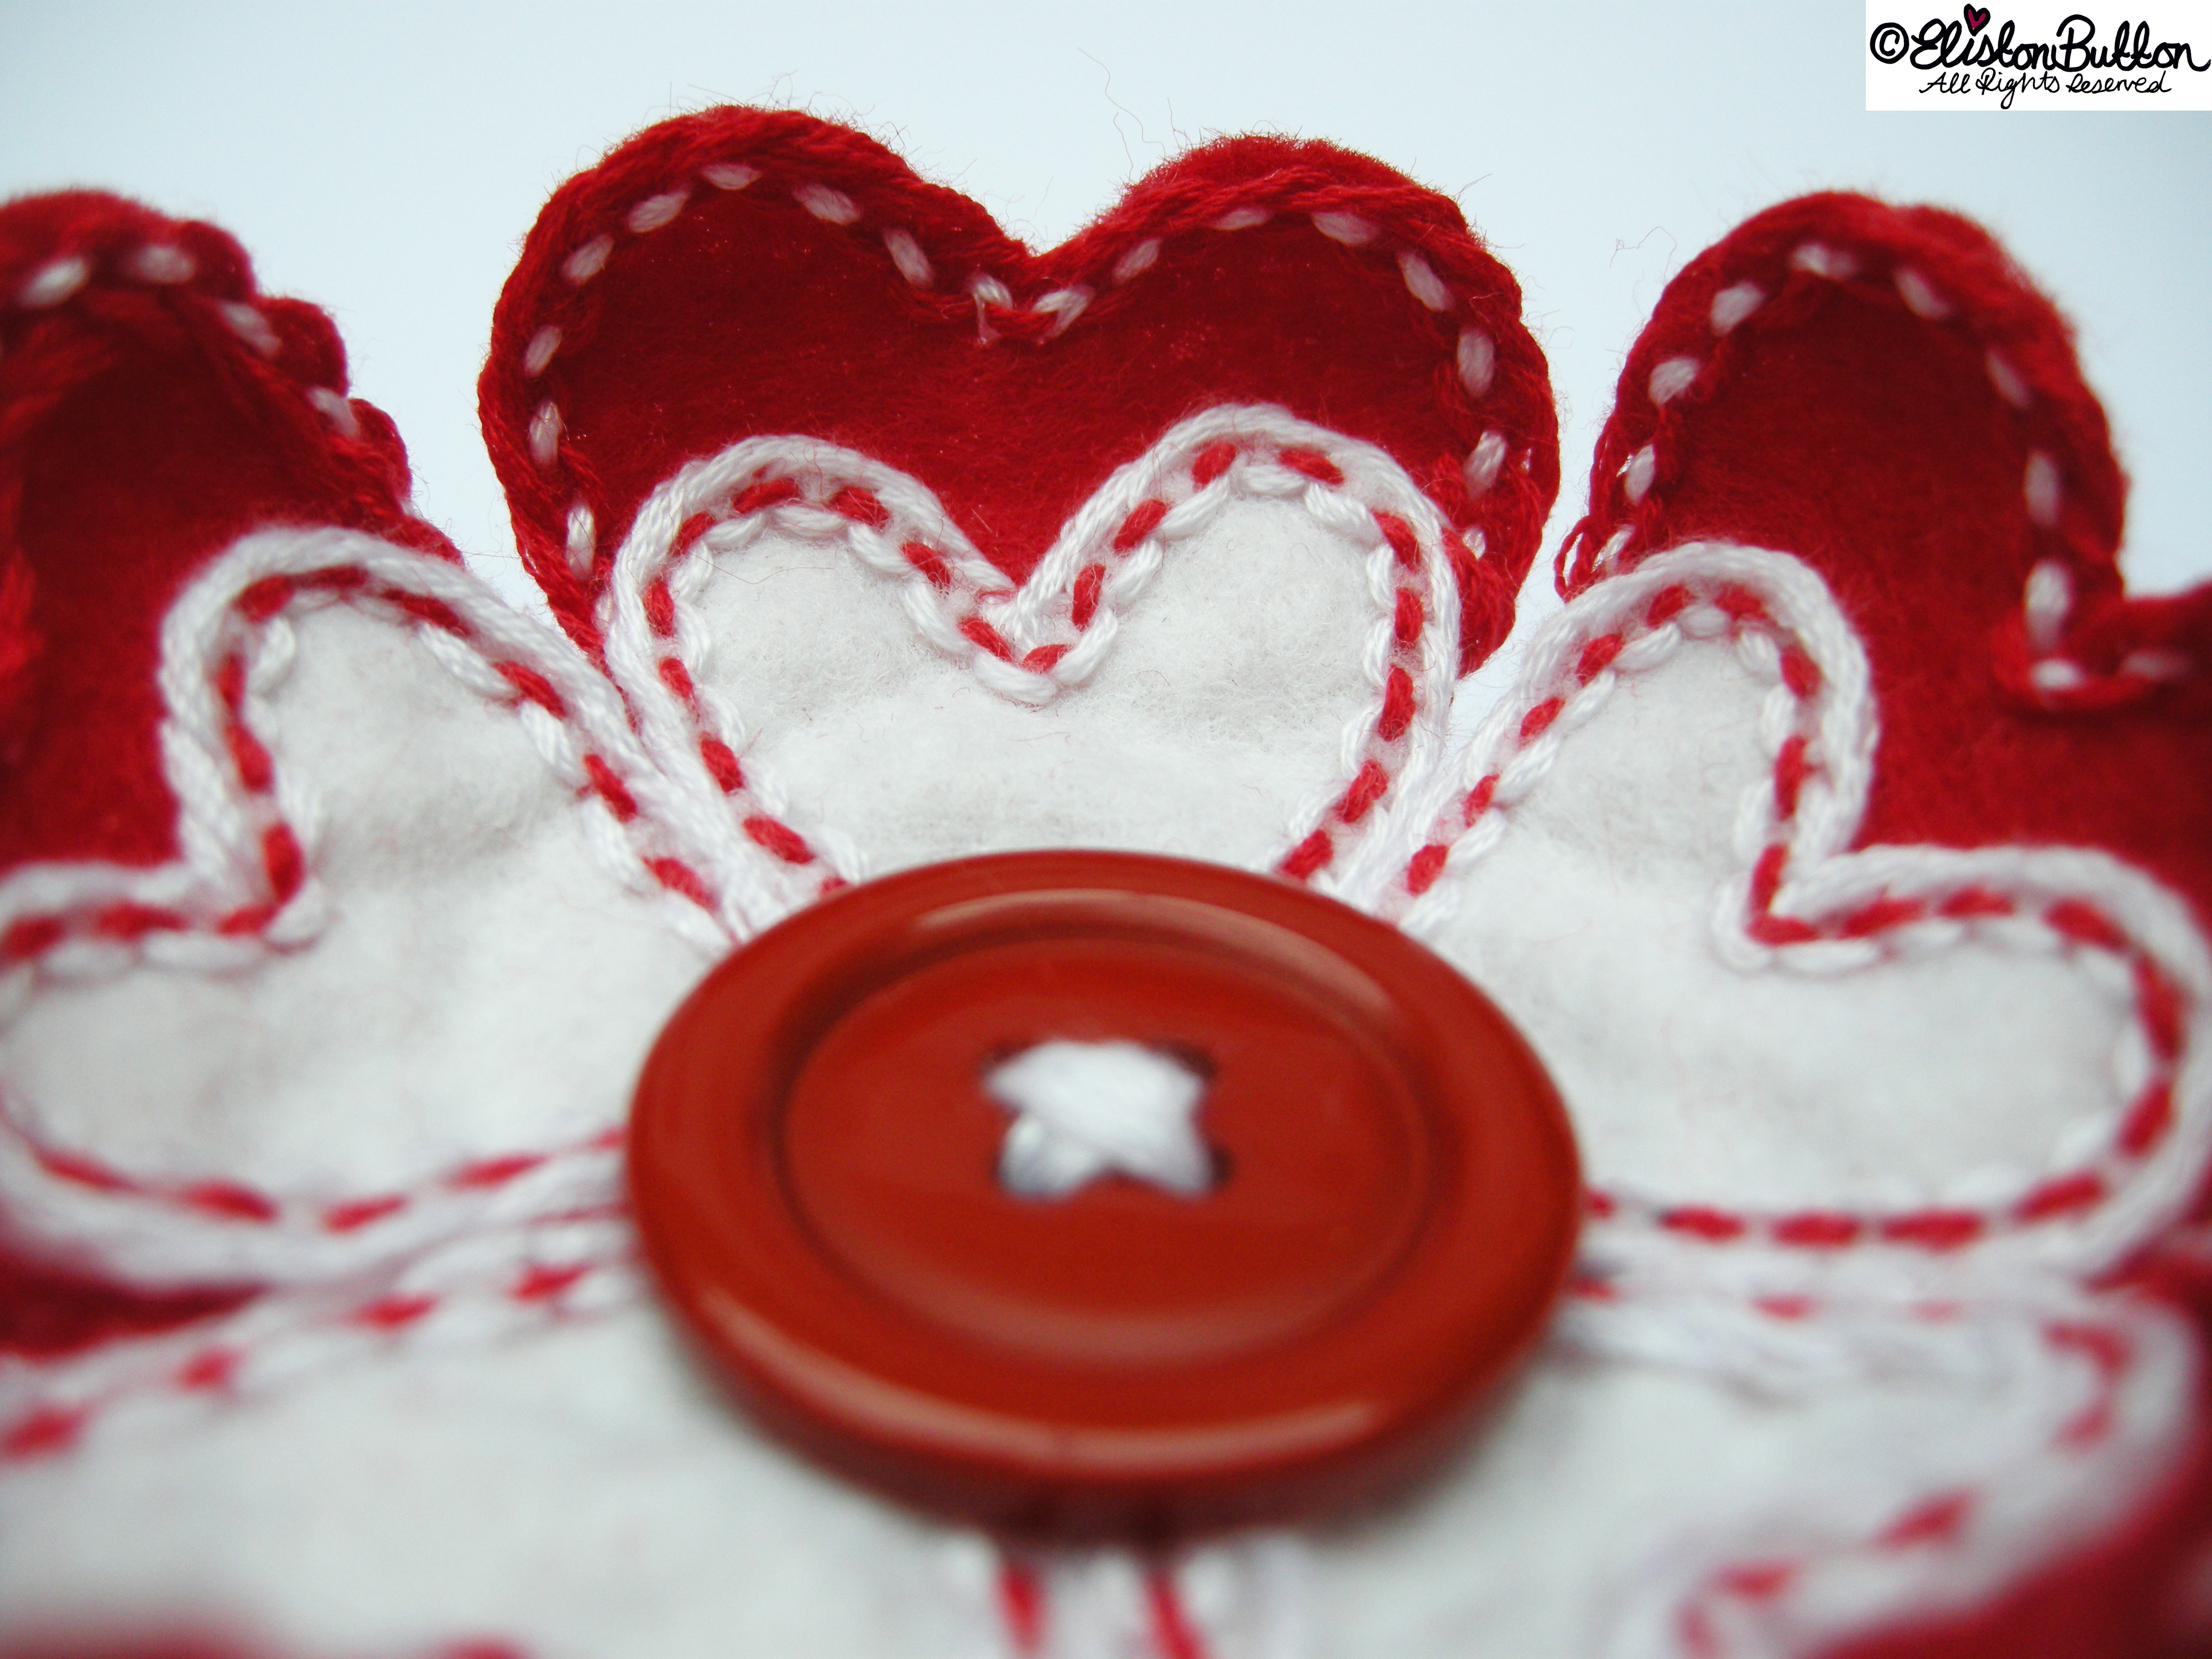 Hello Lover Red and White Embroidered Felt Heart Petal Flower Brooch - Dimensional Petals Close Up - 27 Before 27 - Hello Lover... at www.elistonbutton.com - Eliston Button - That Crafty Kid – Art, Design, Craft & Adventure.